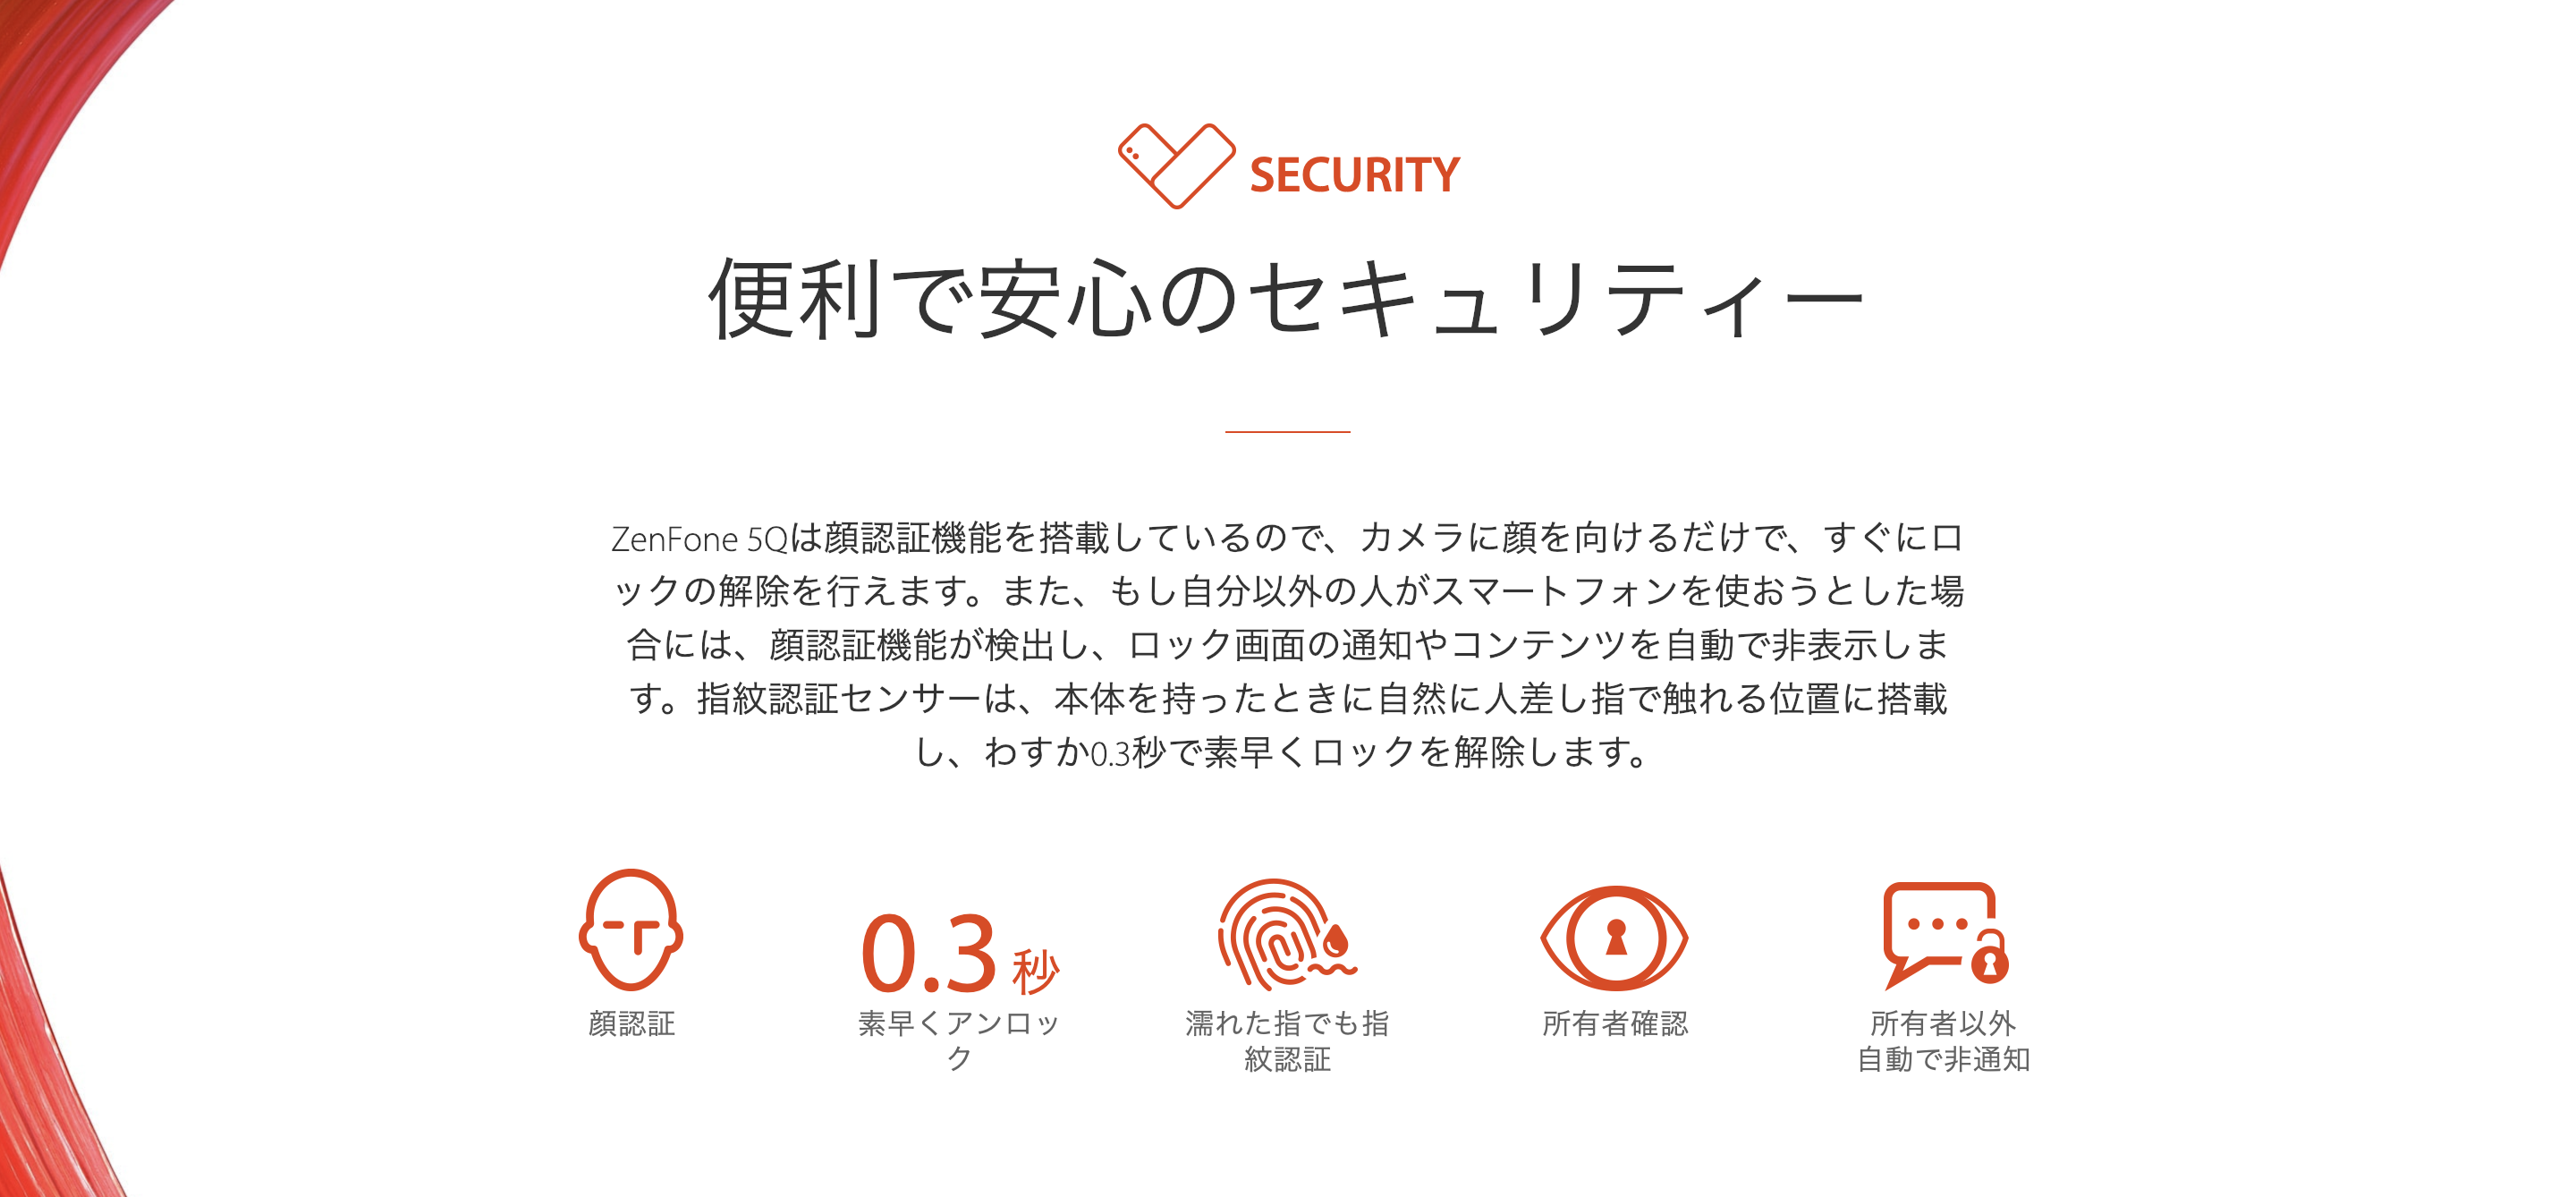 zenfone 5q authentication